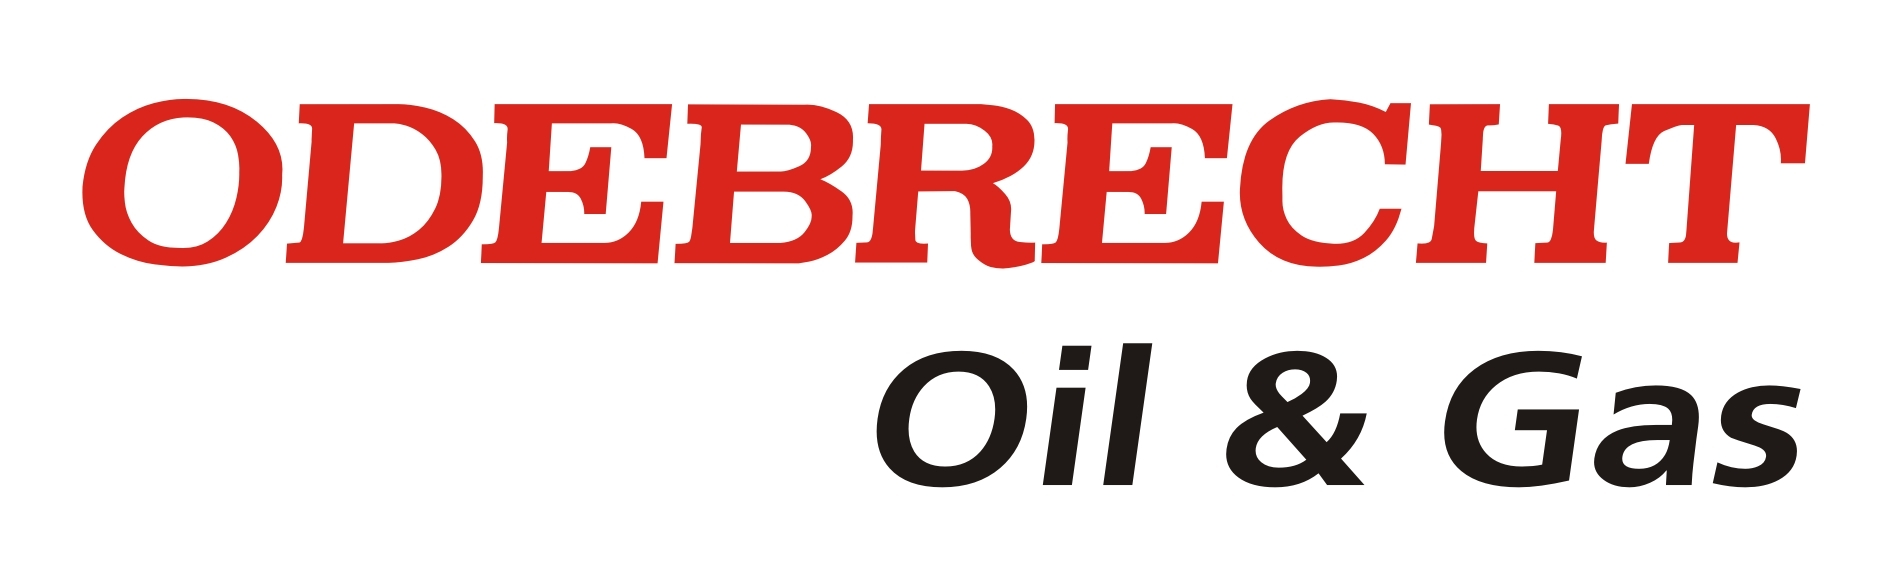 Odebrecht Oil  Gas